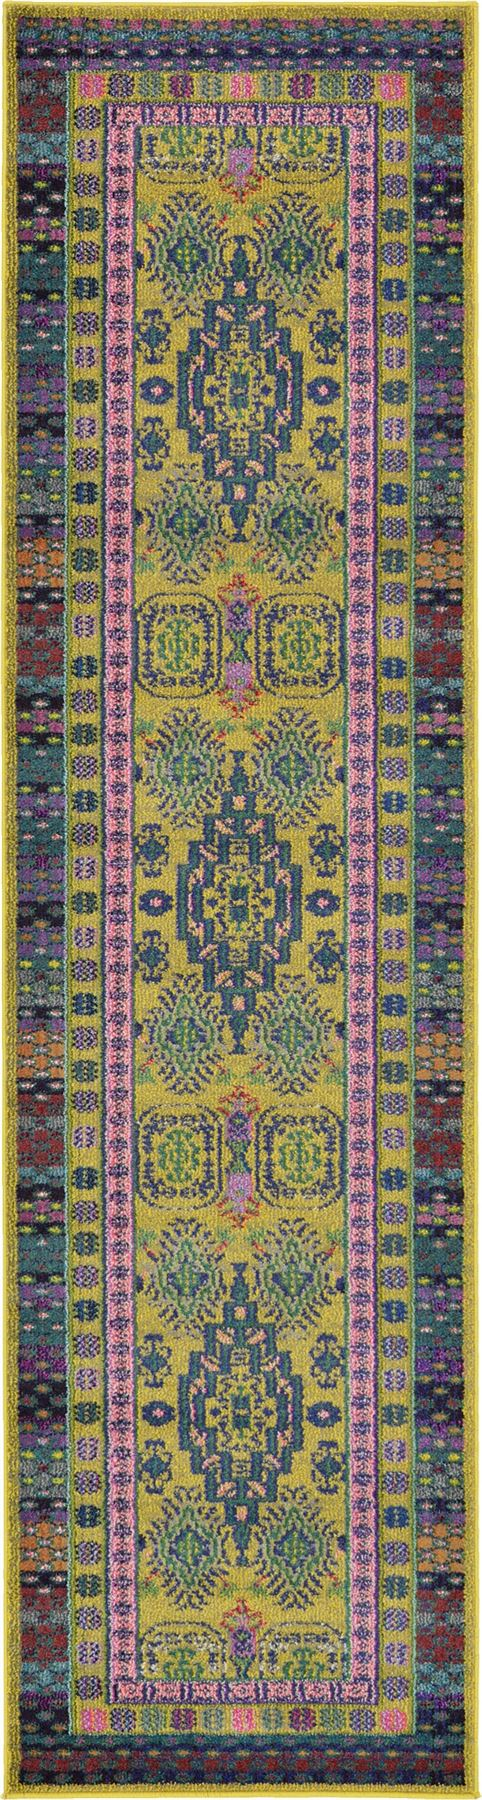 Oriental Rugs Persian Traditional Carpets Modern Rug Area